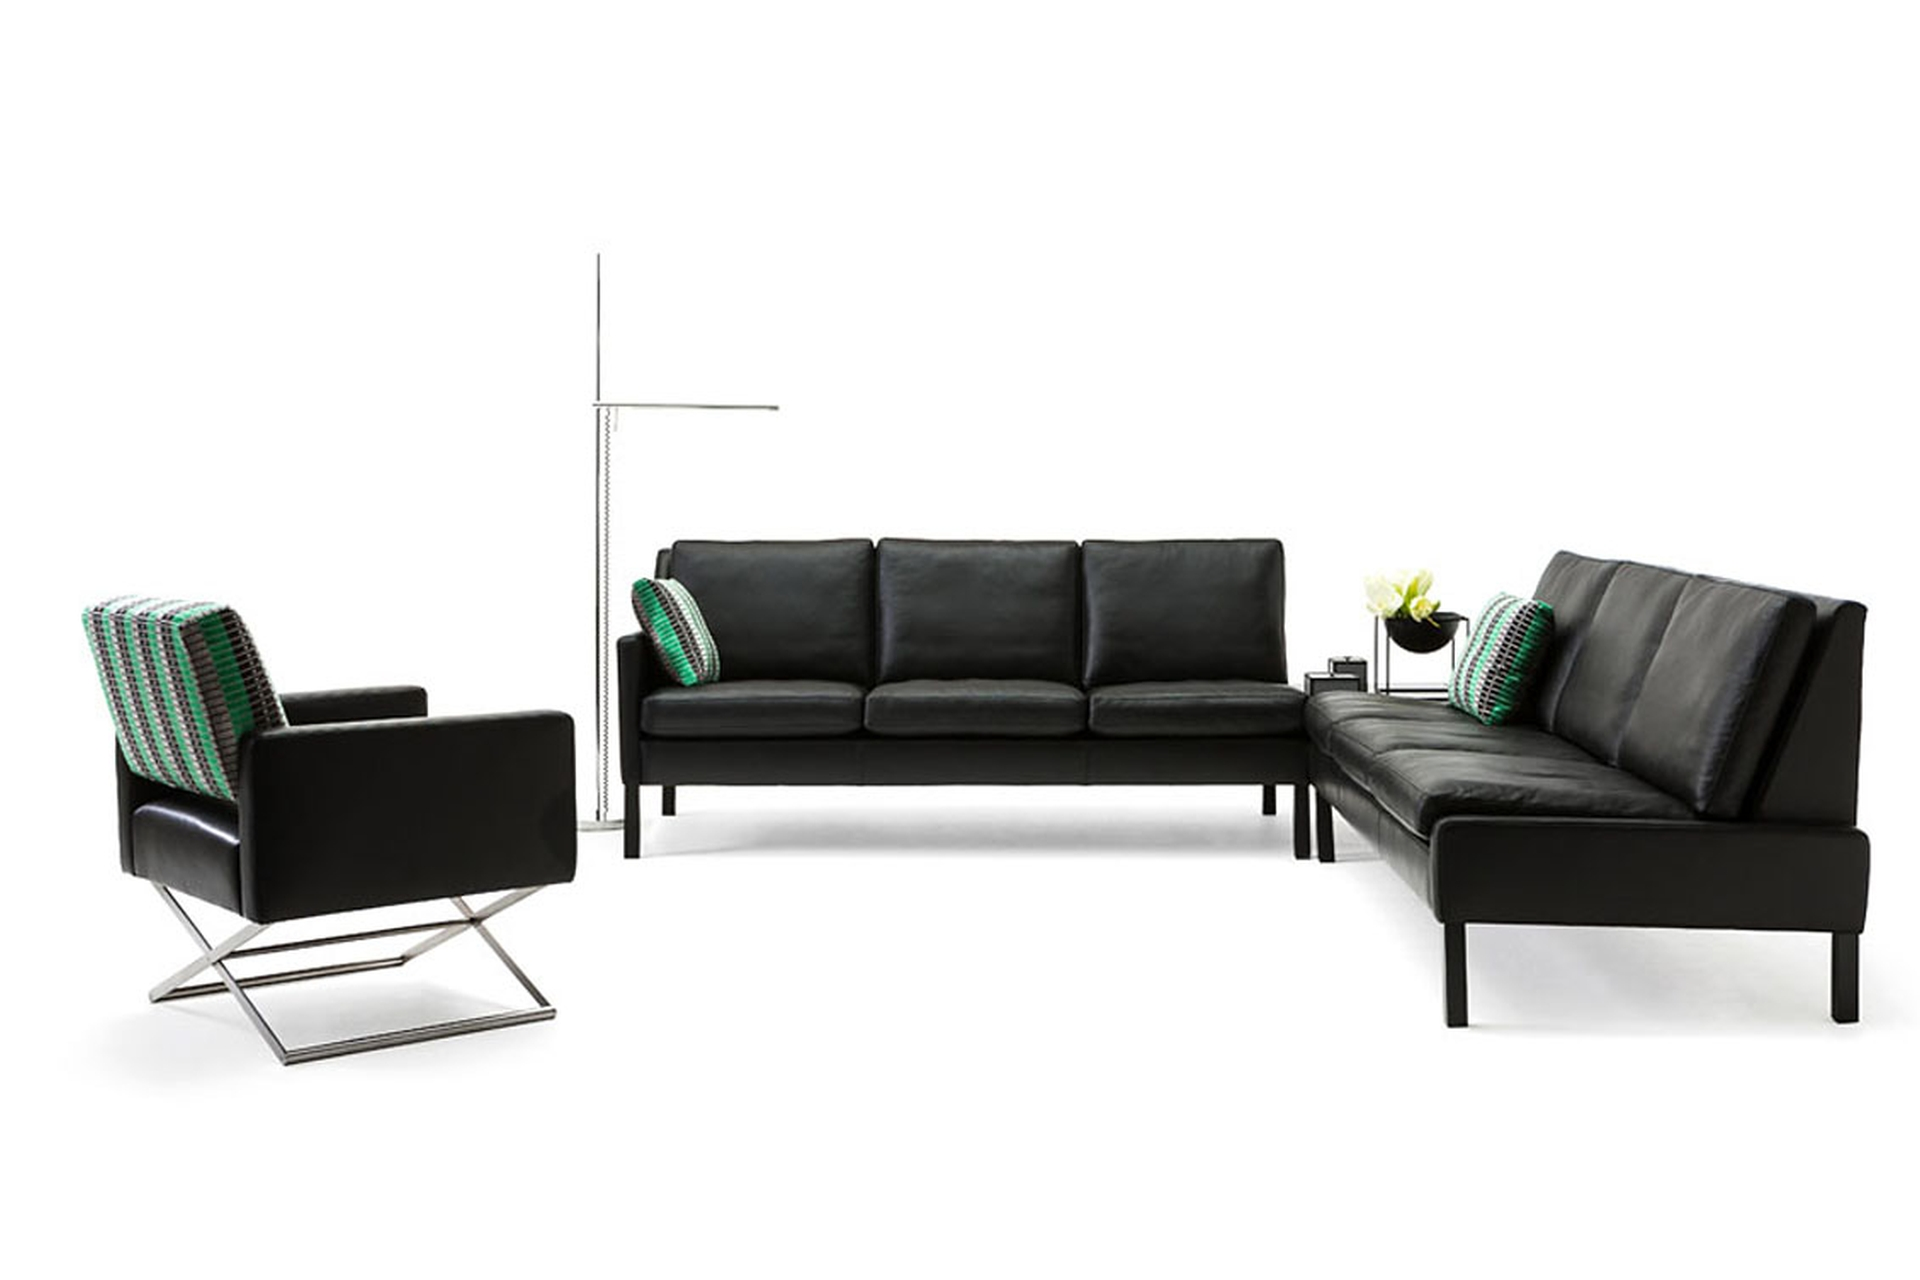 sofa mit sessel awesome sofa verschicken best of ensa sofa couch sessel with sofa mit sessel. Black Bedroom Furniture Sets. Home Design Ideas